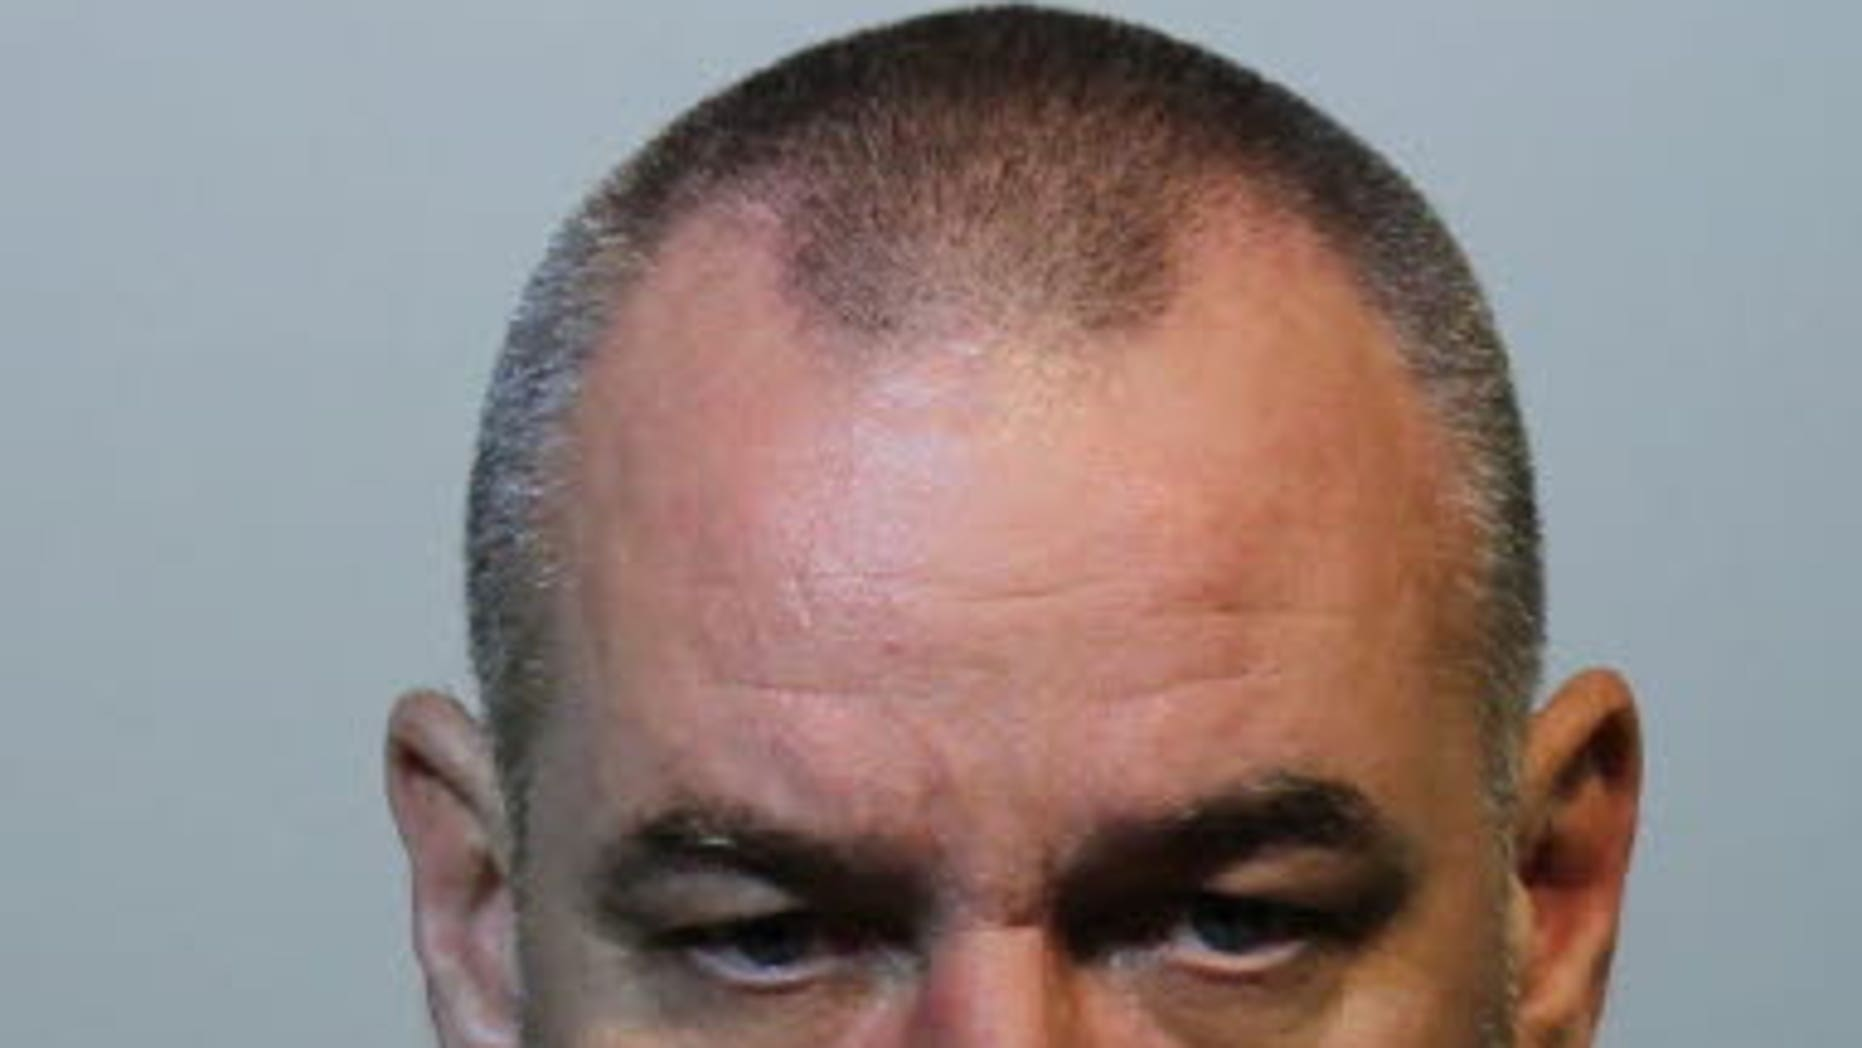 Michael Watters, 48, was arrested Sunday after allegedly stealing identities from several people.